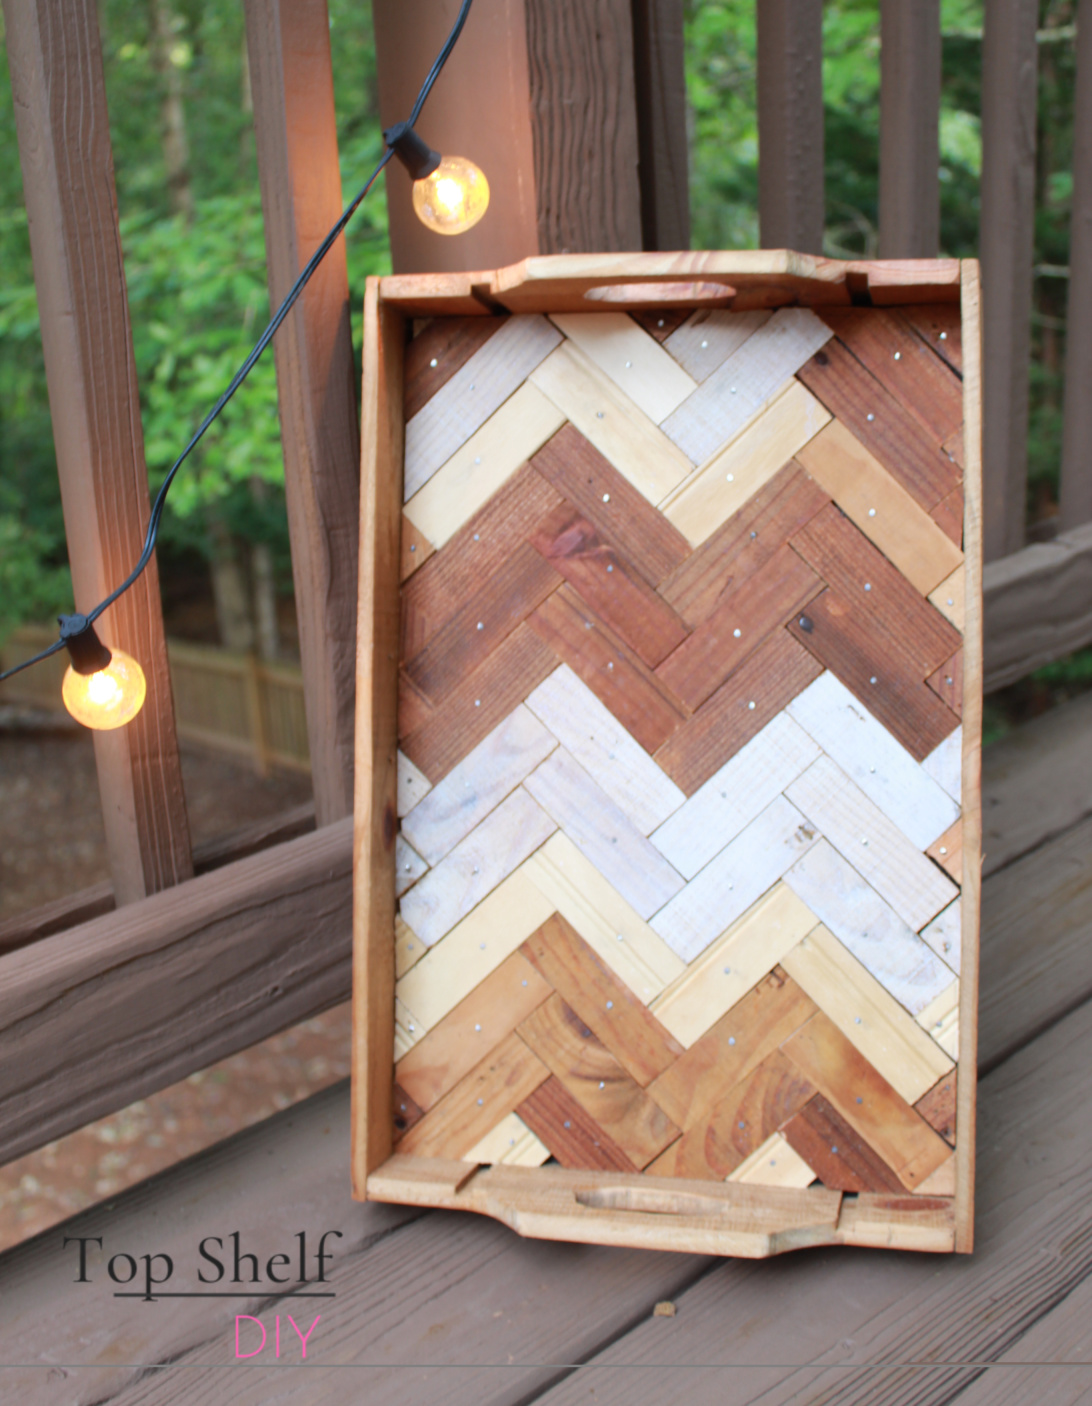 5 Beginner Wood Projects To Make For Others This Christmas Top Shelf Diy